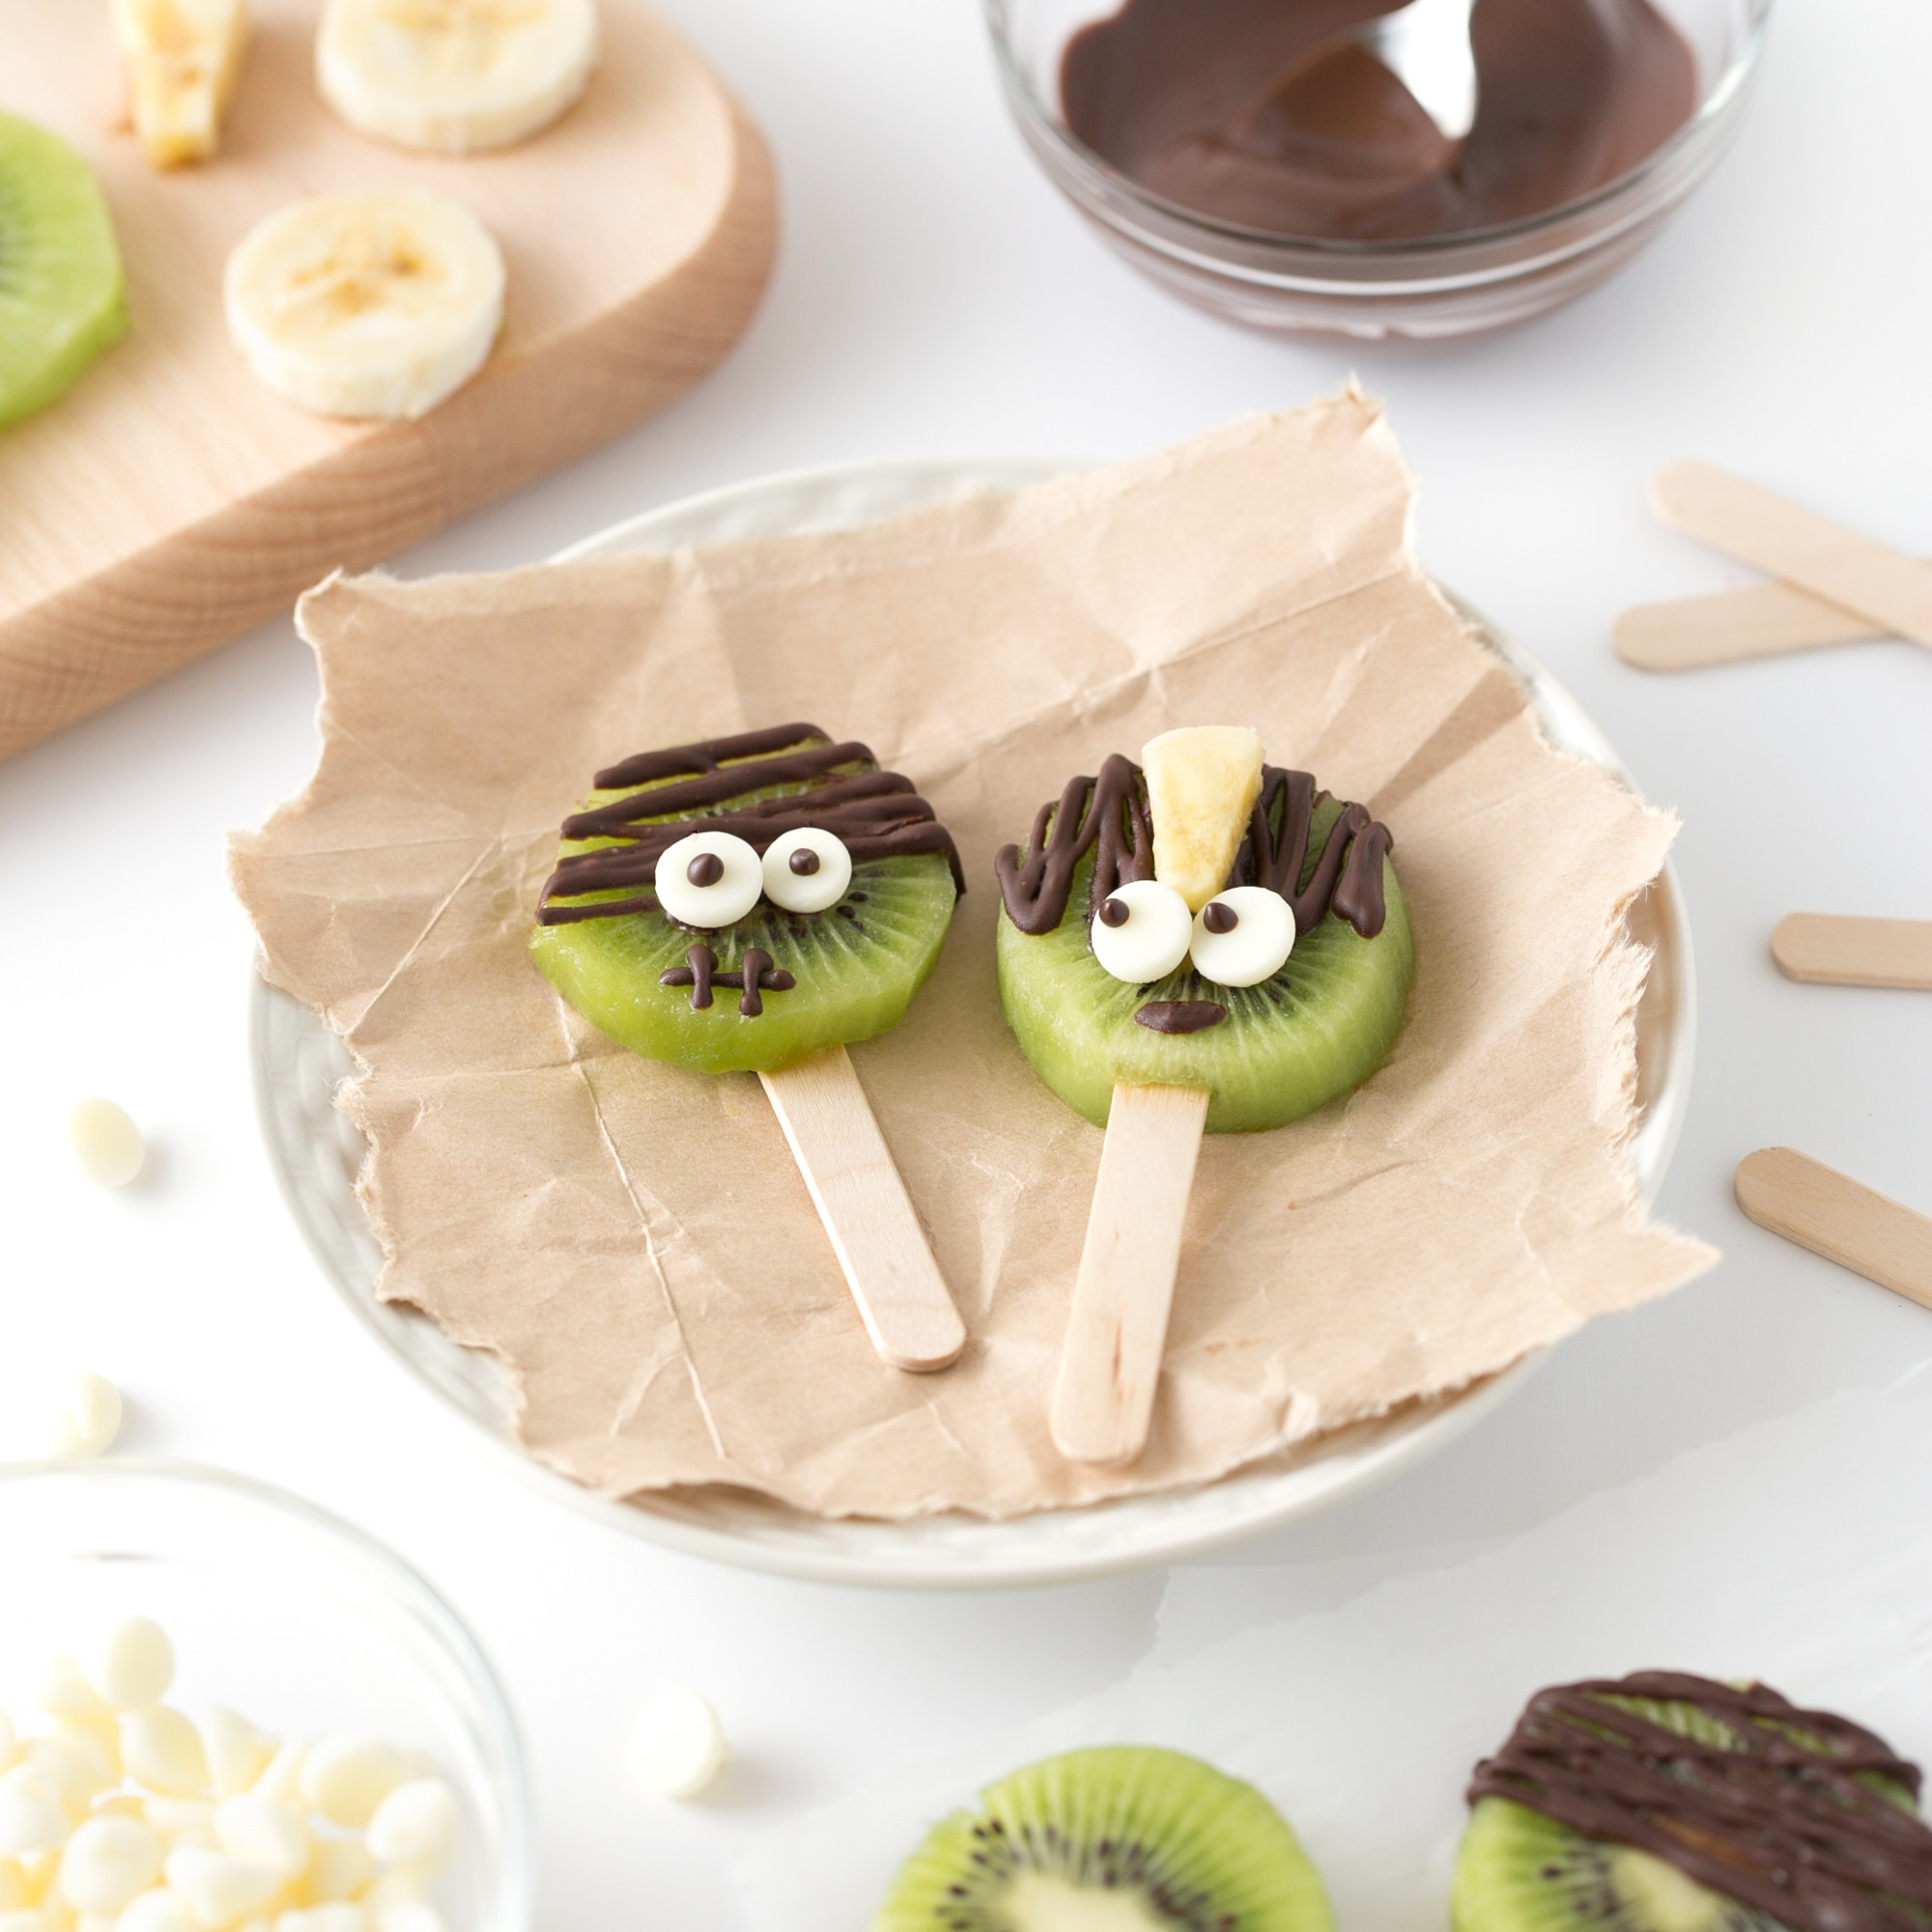 Healthy Halloween Desserts  Easy Fun Healthy Halloween Treats Your Trick or Treaters